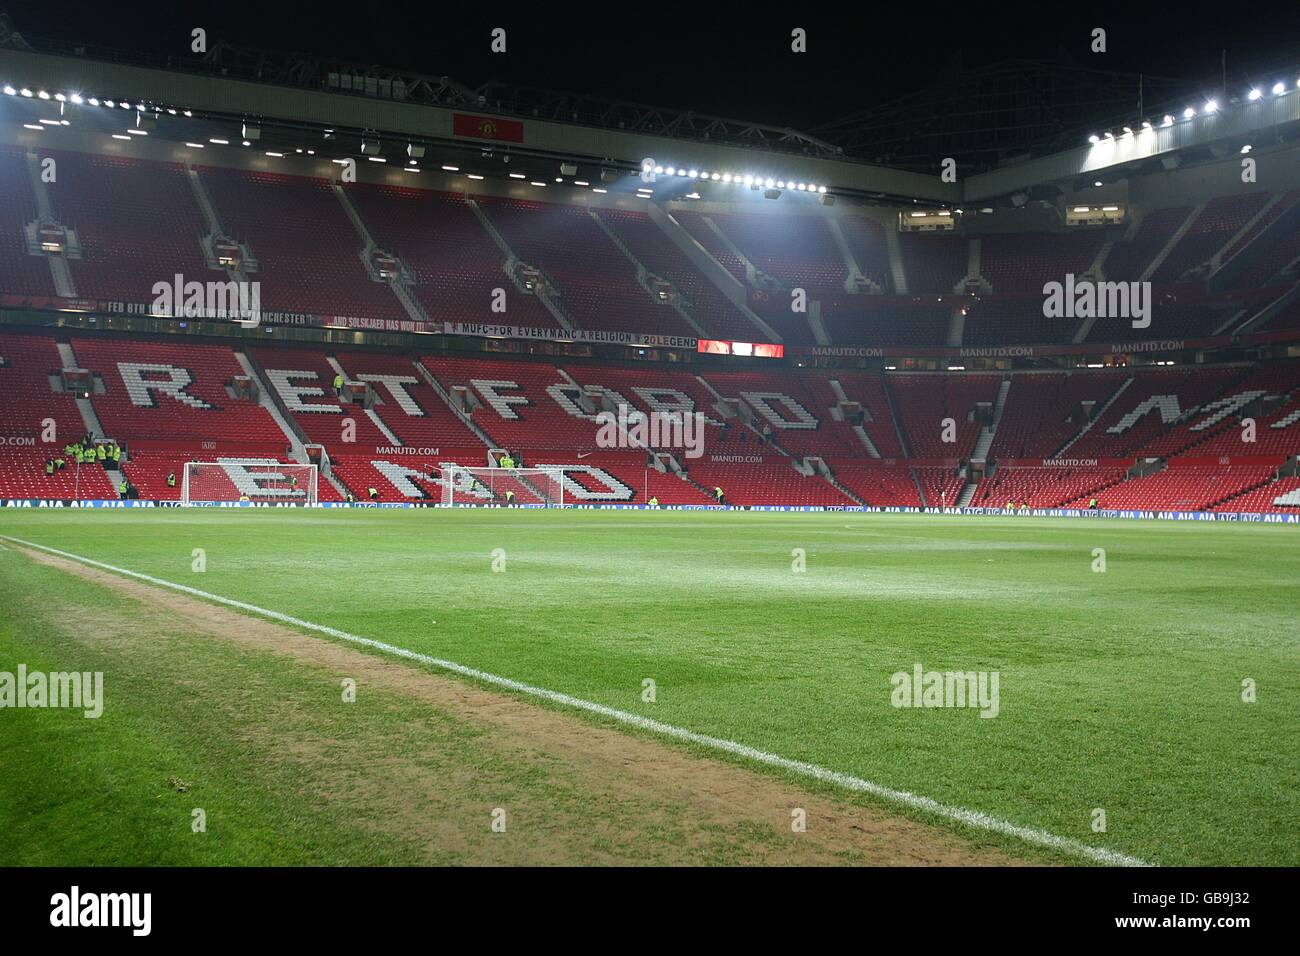 Soccer - Carling Cup - Quarter Final - Manchester United v Blackburn Rovers - Old Trafford - Stock Image